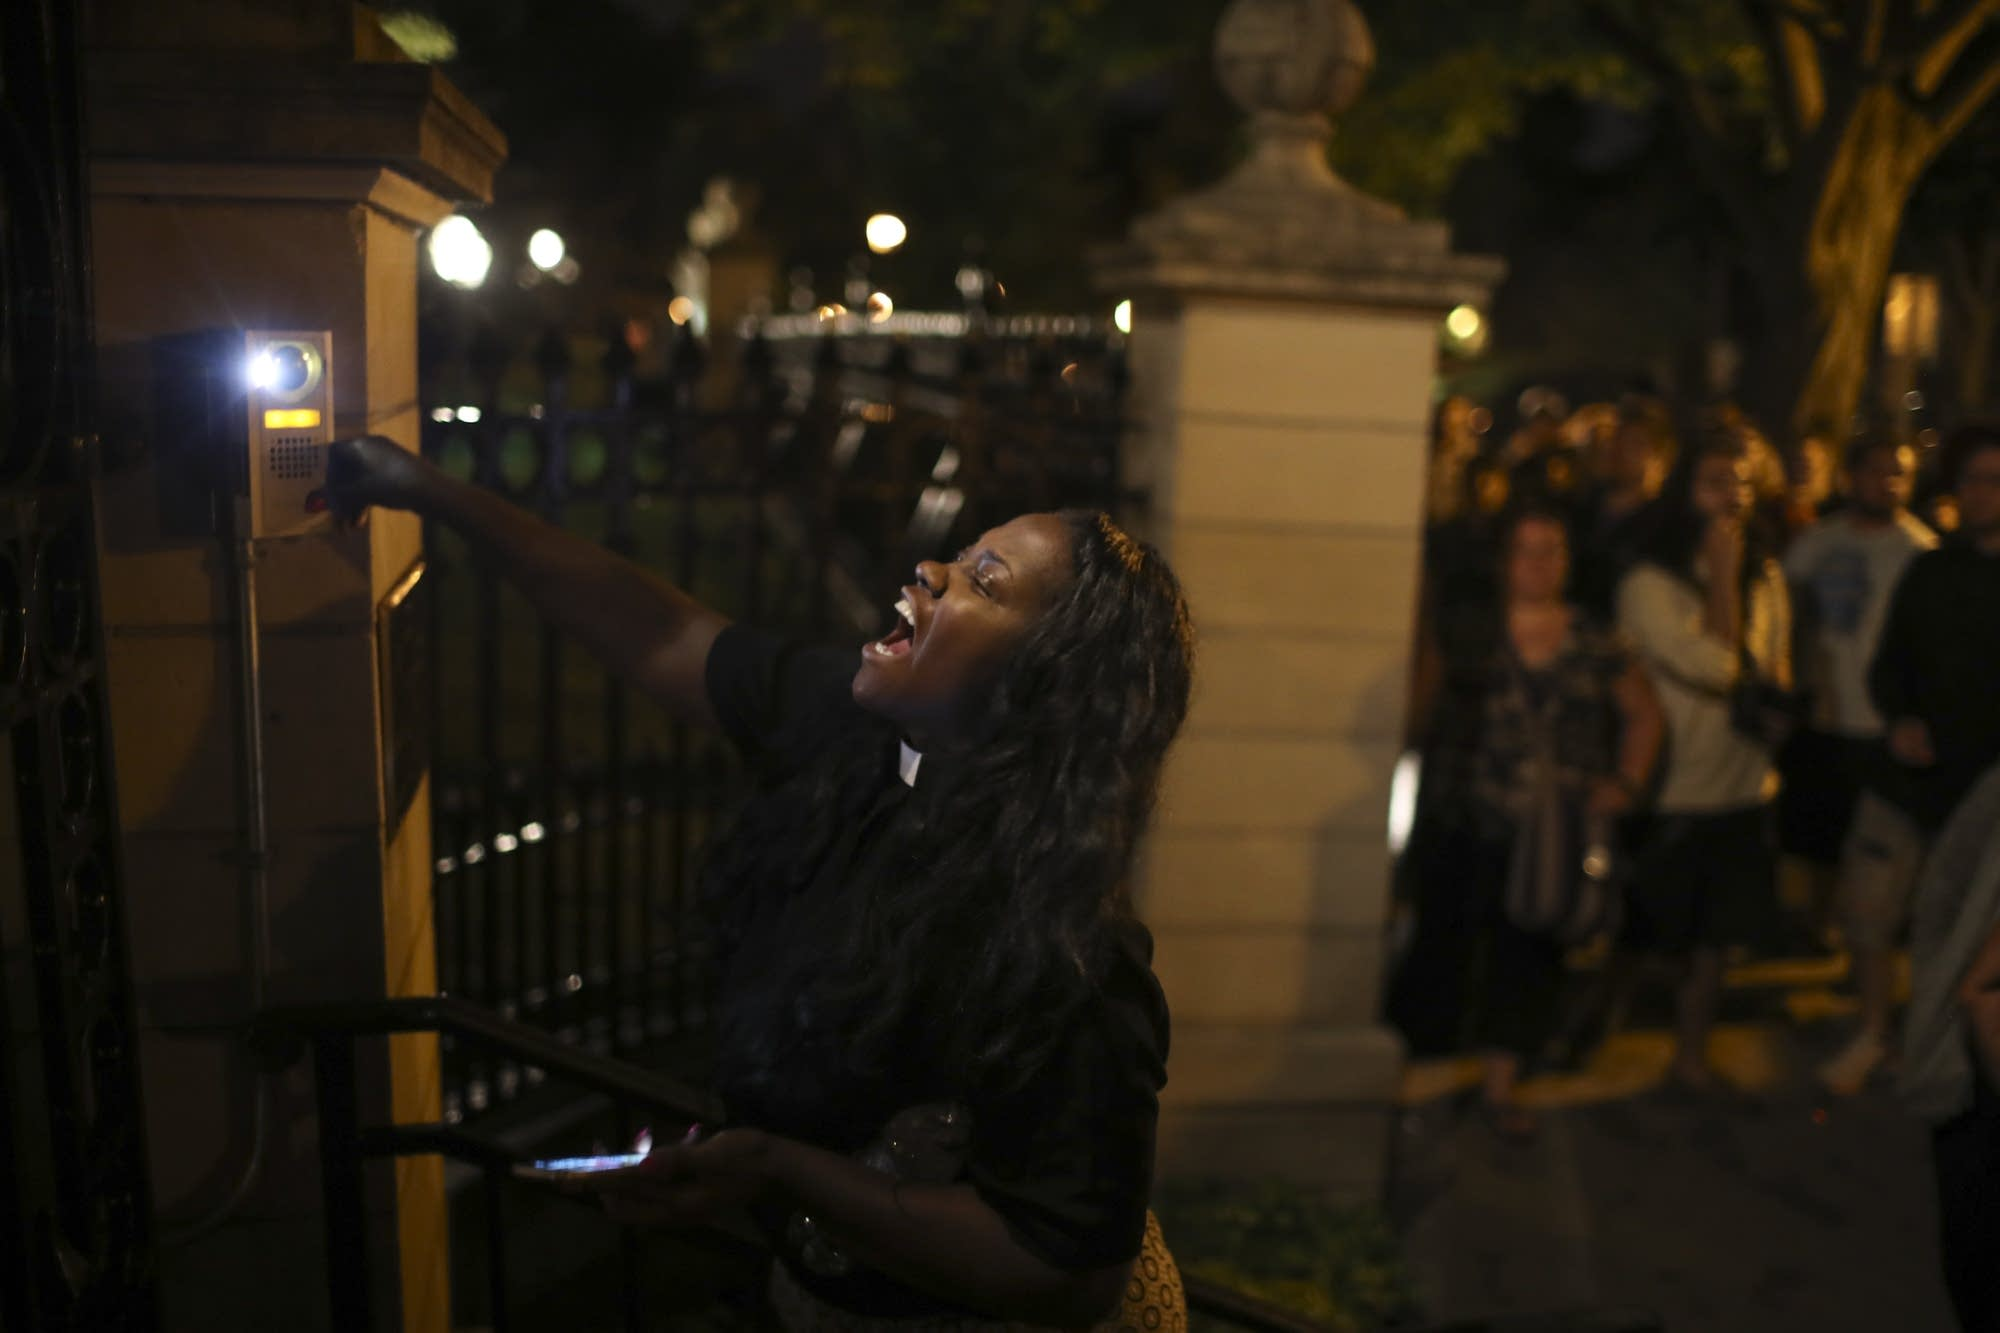 Woman rings doorbell at governor's residence